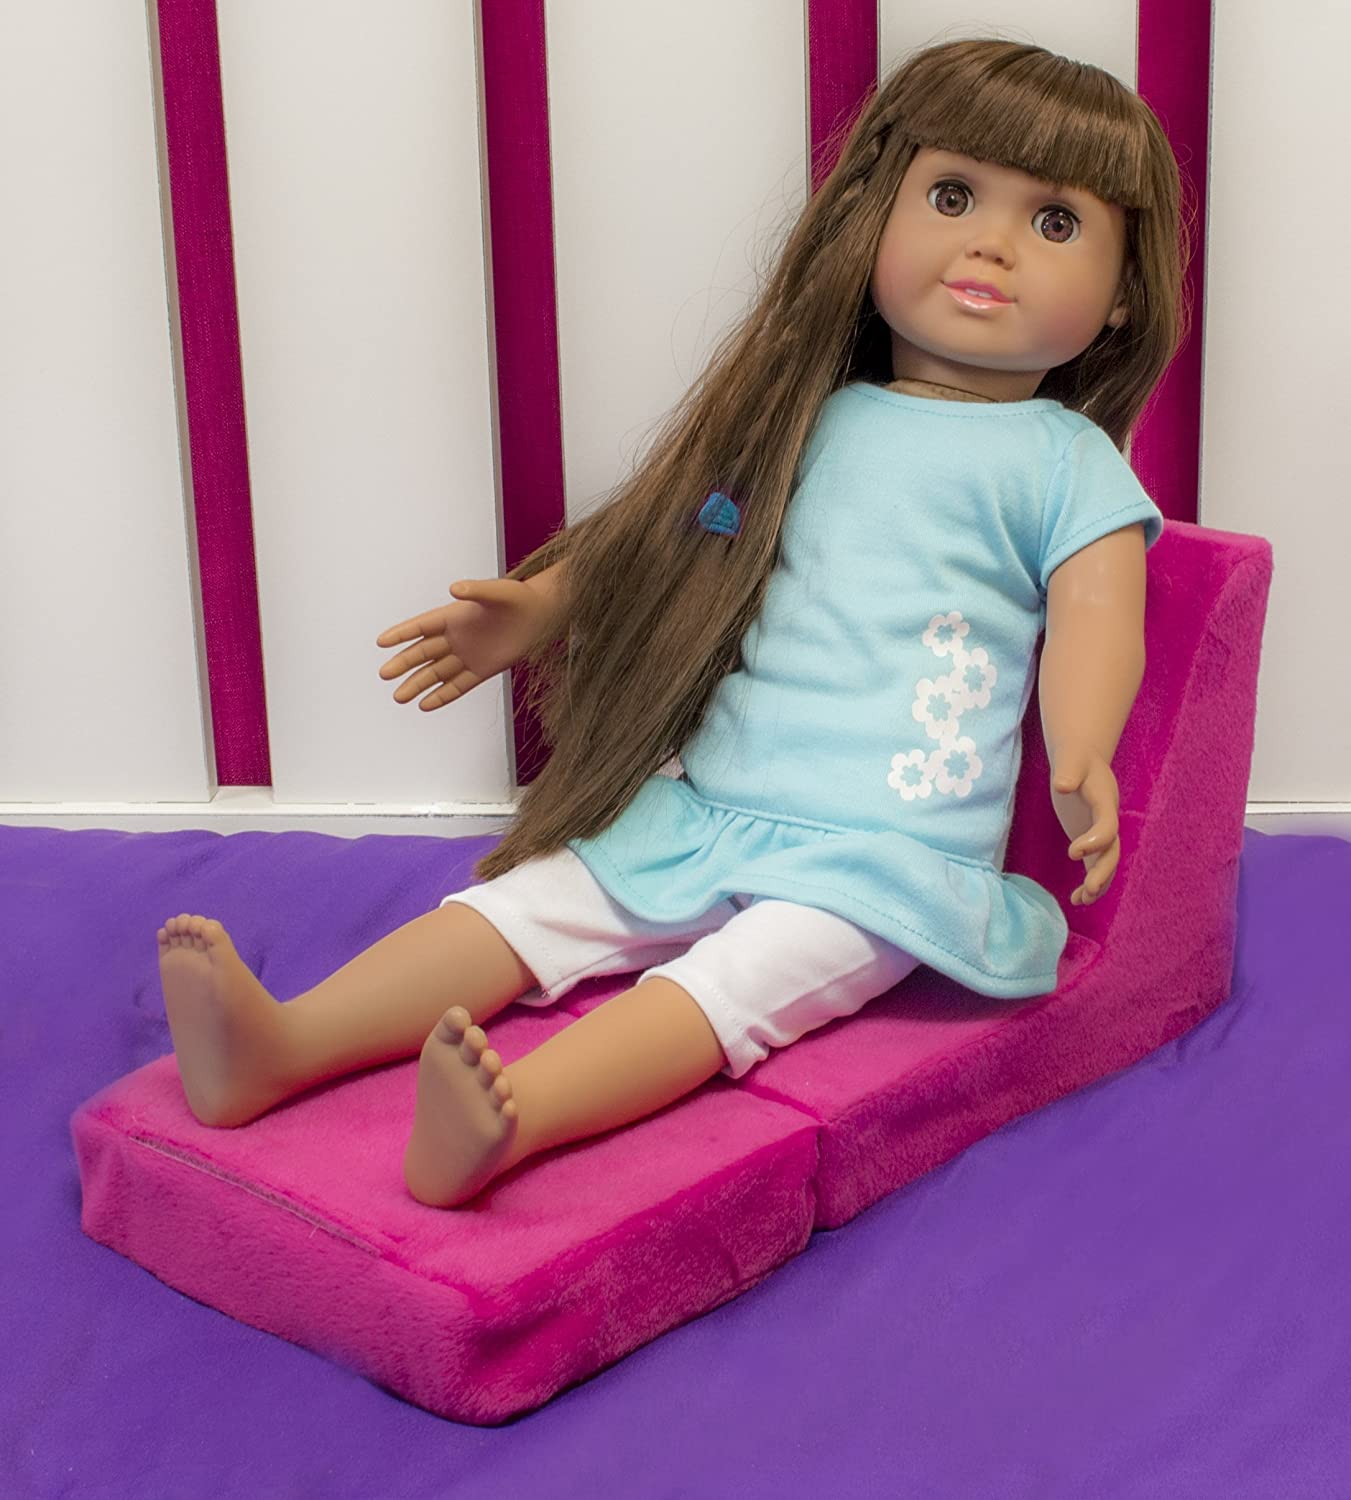 Amazon.com: Springfield Collection by Fibre-Craft 18 Inch Doll Outfit, Cupcake PJs: Toys & Games